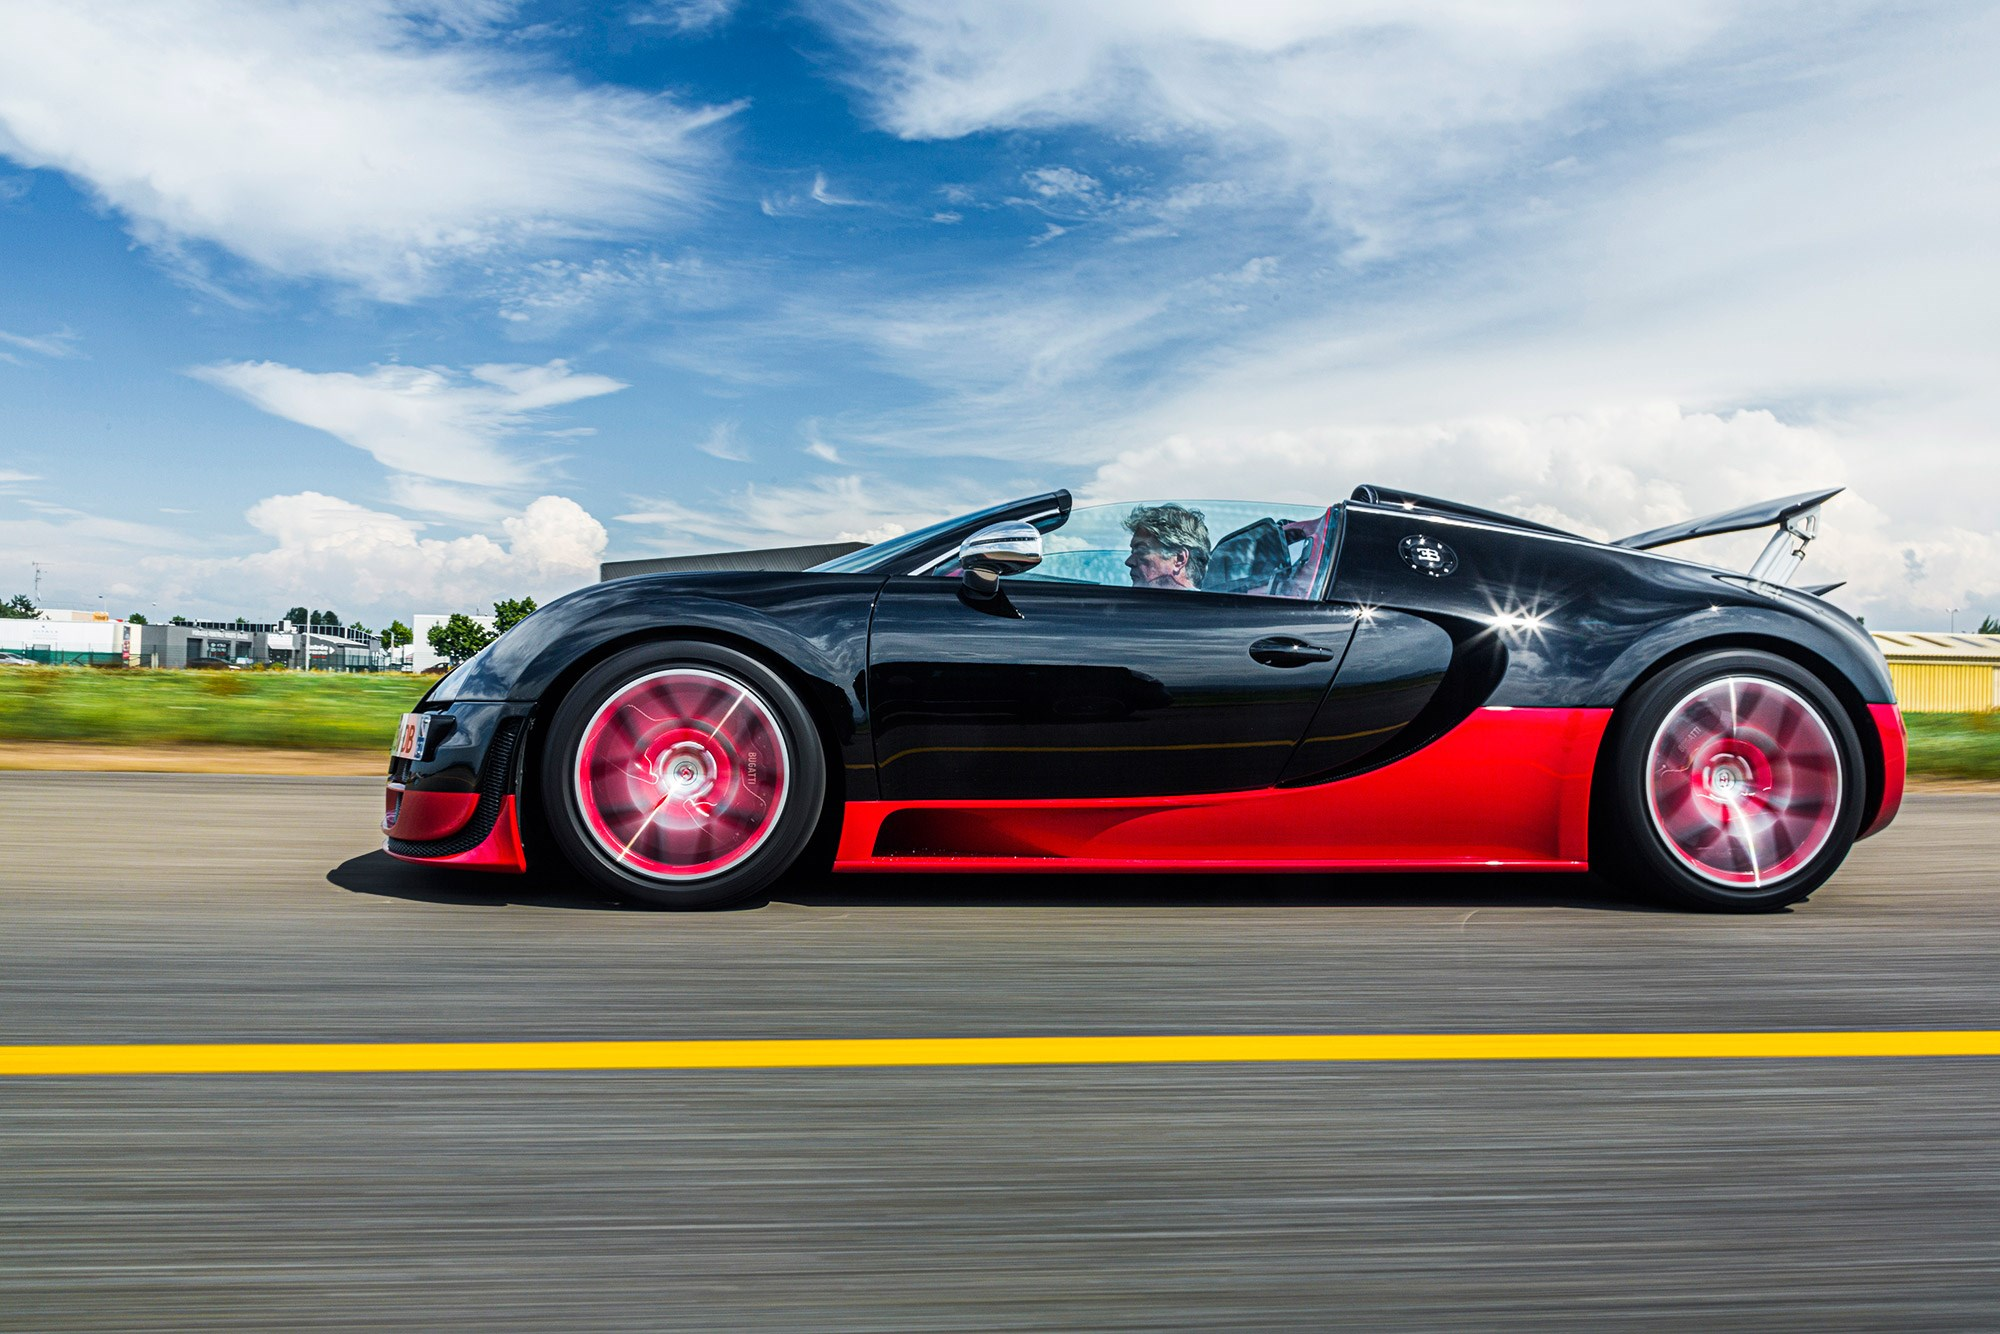 popping my bugatti veyron cherry: this is what it feels like to